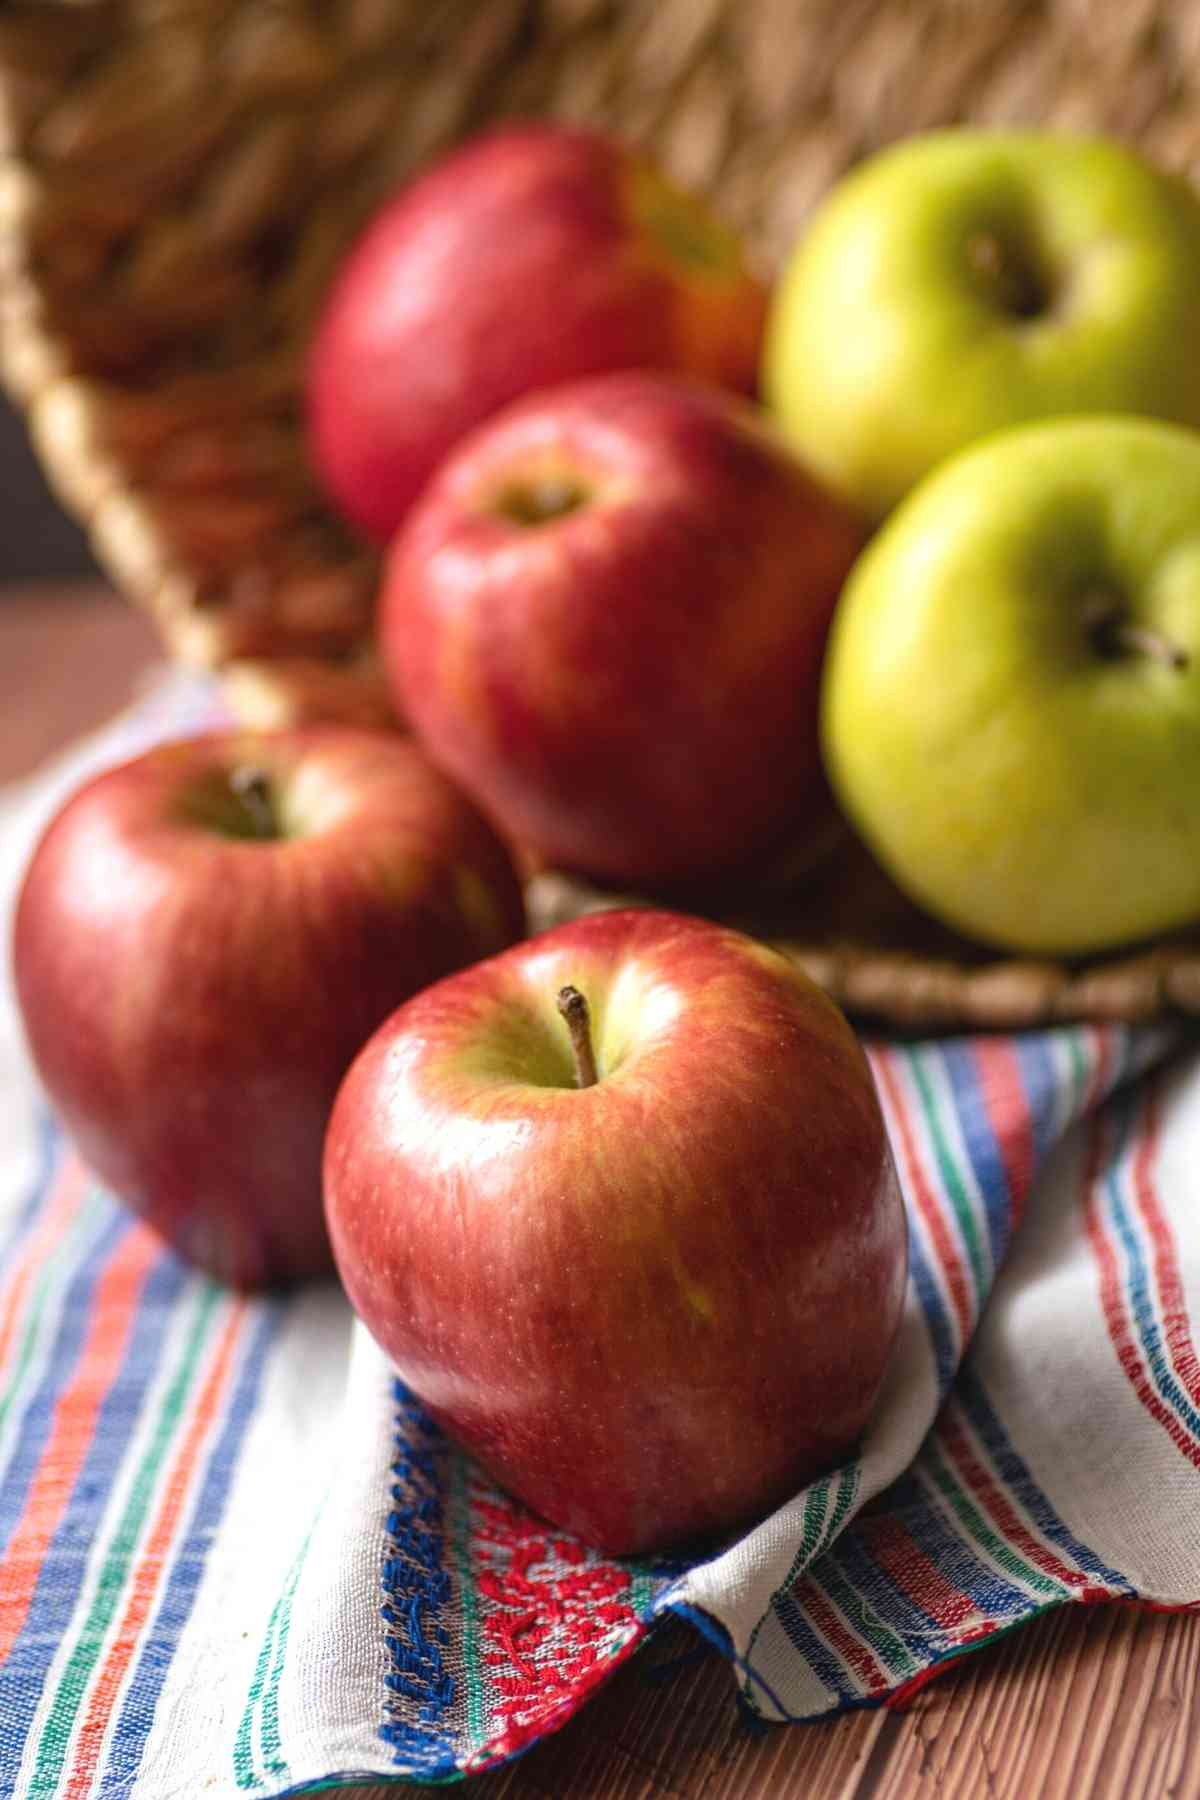 Closeup of red apples